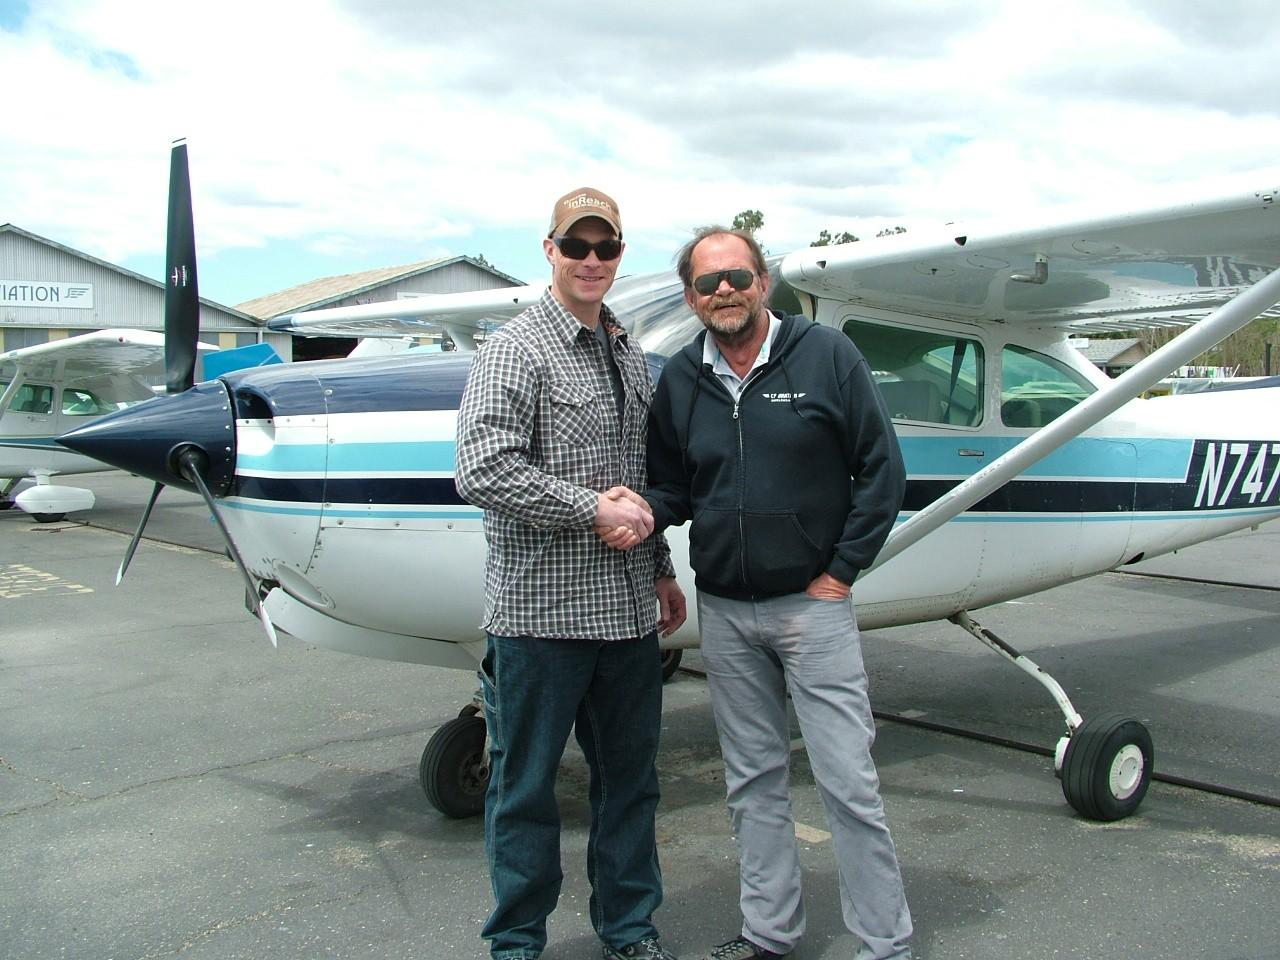 Certified Flight Instructor - Shay Hurd